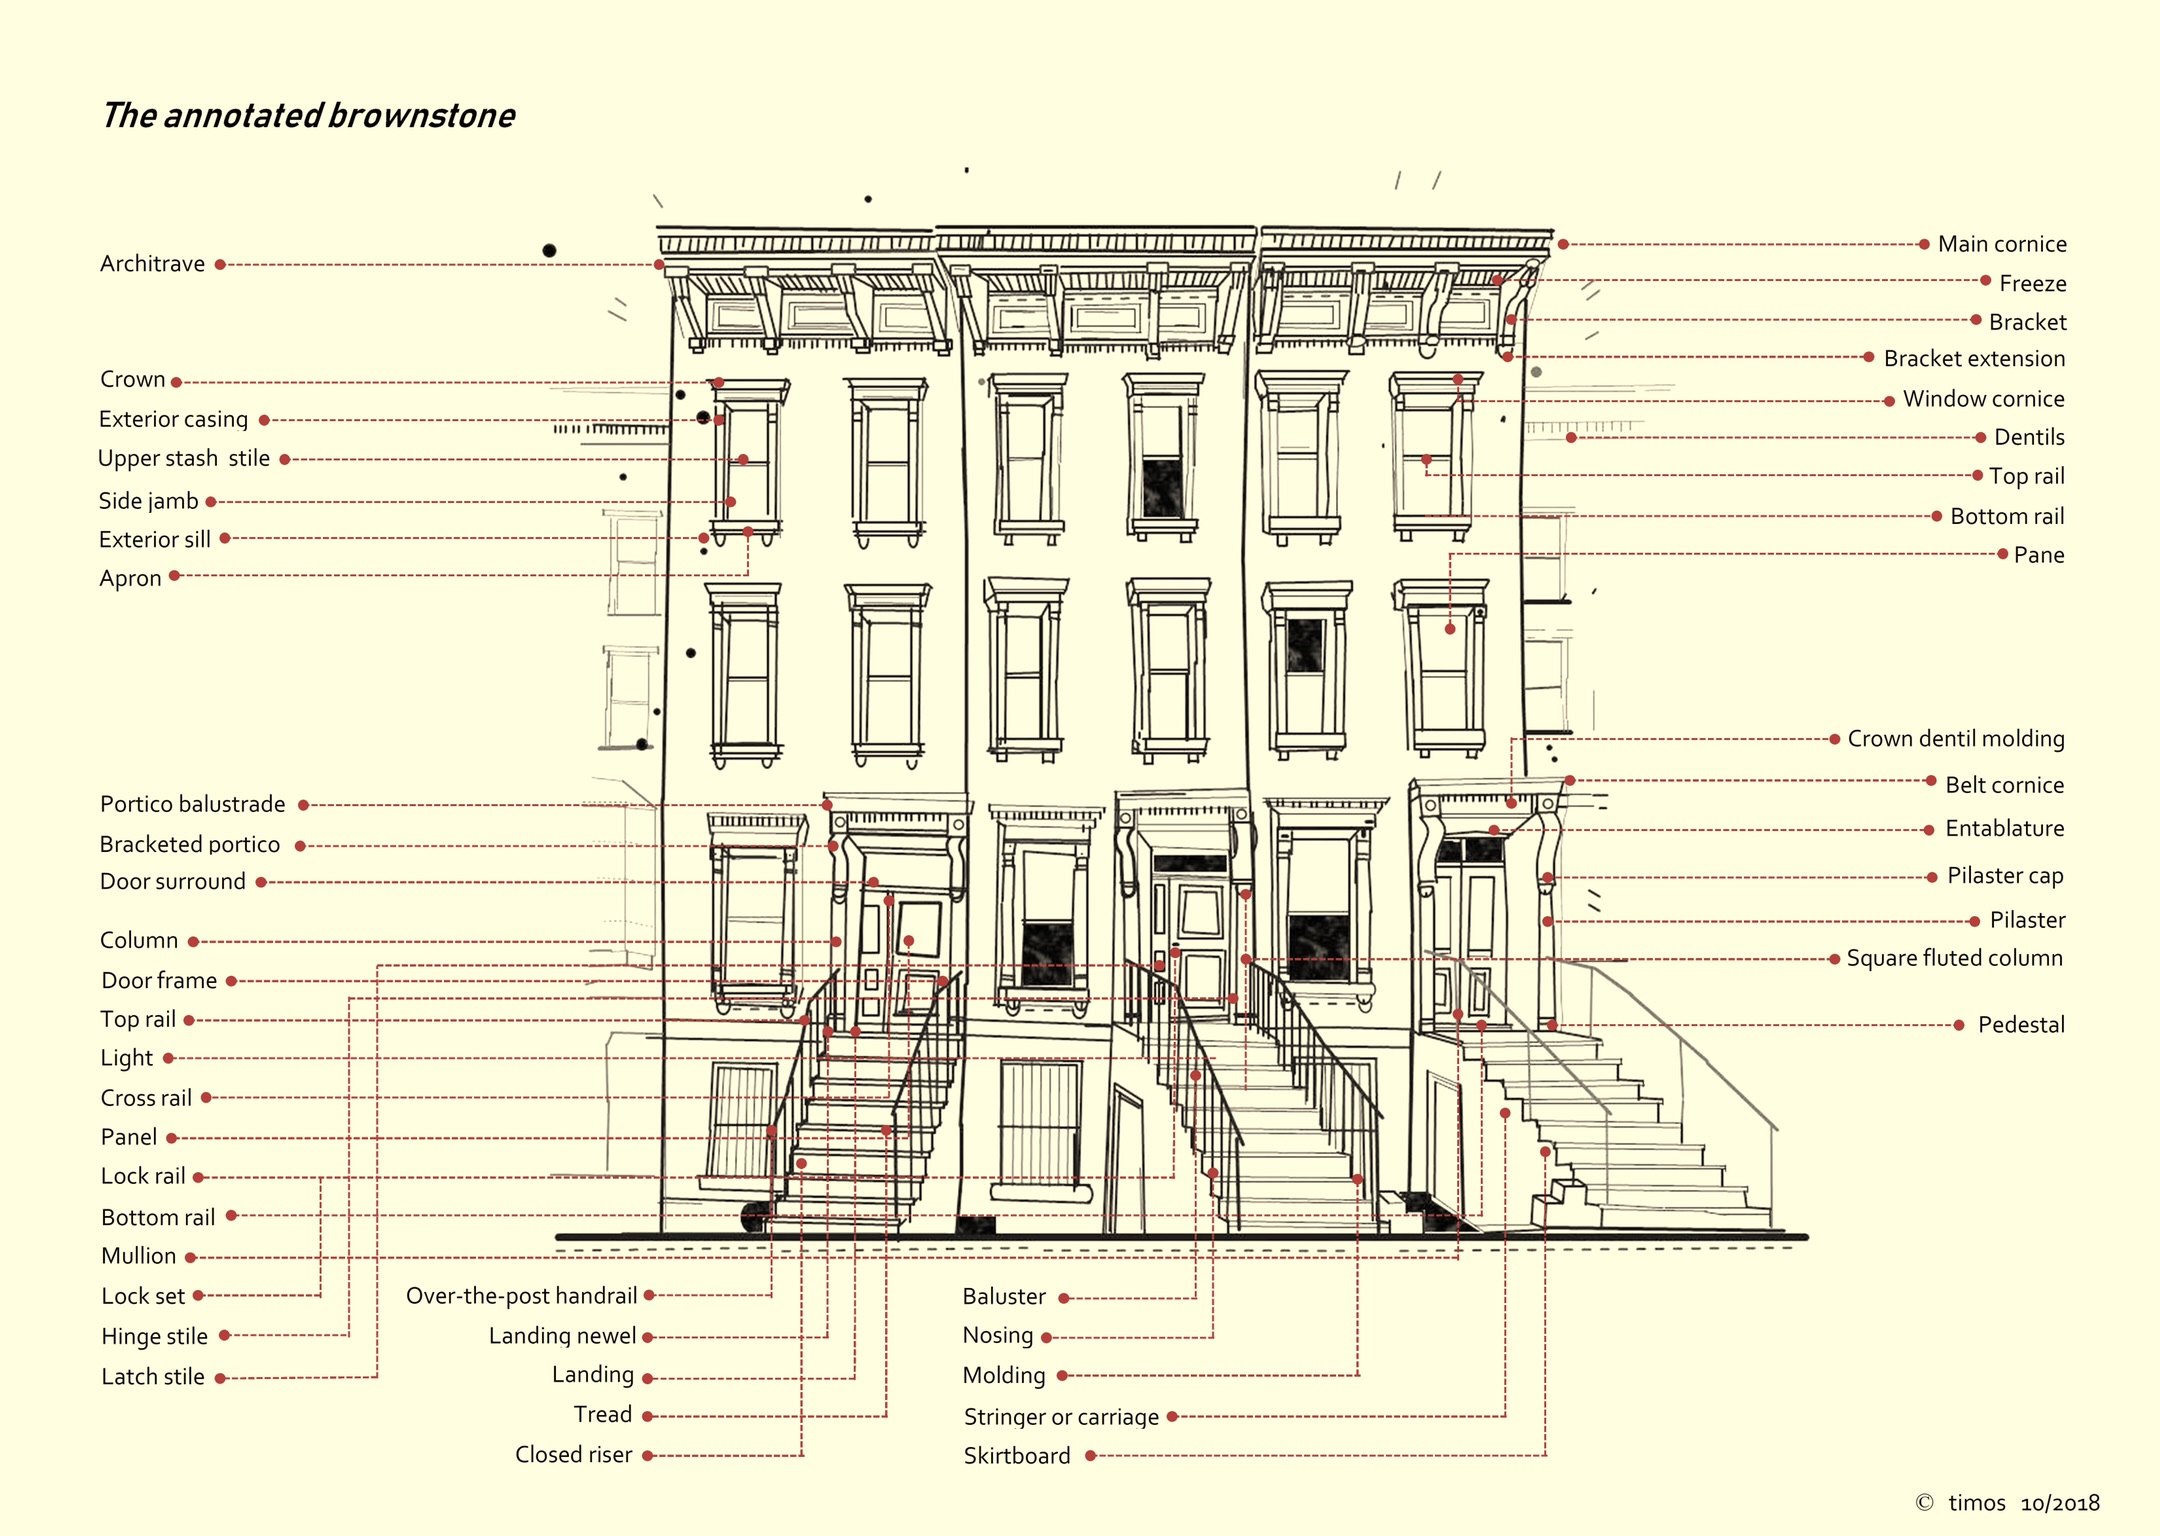 annotated brownstones